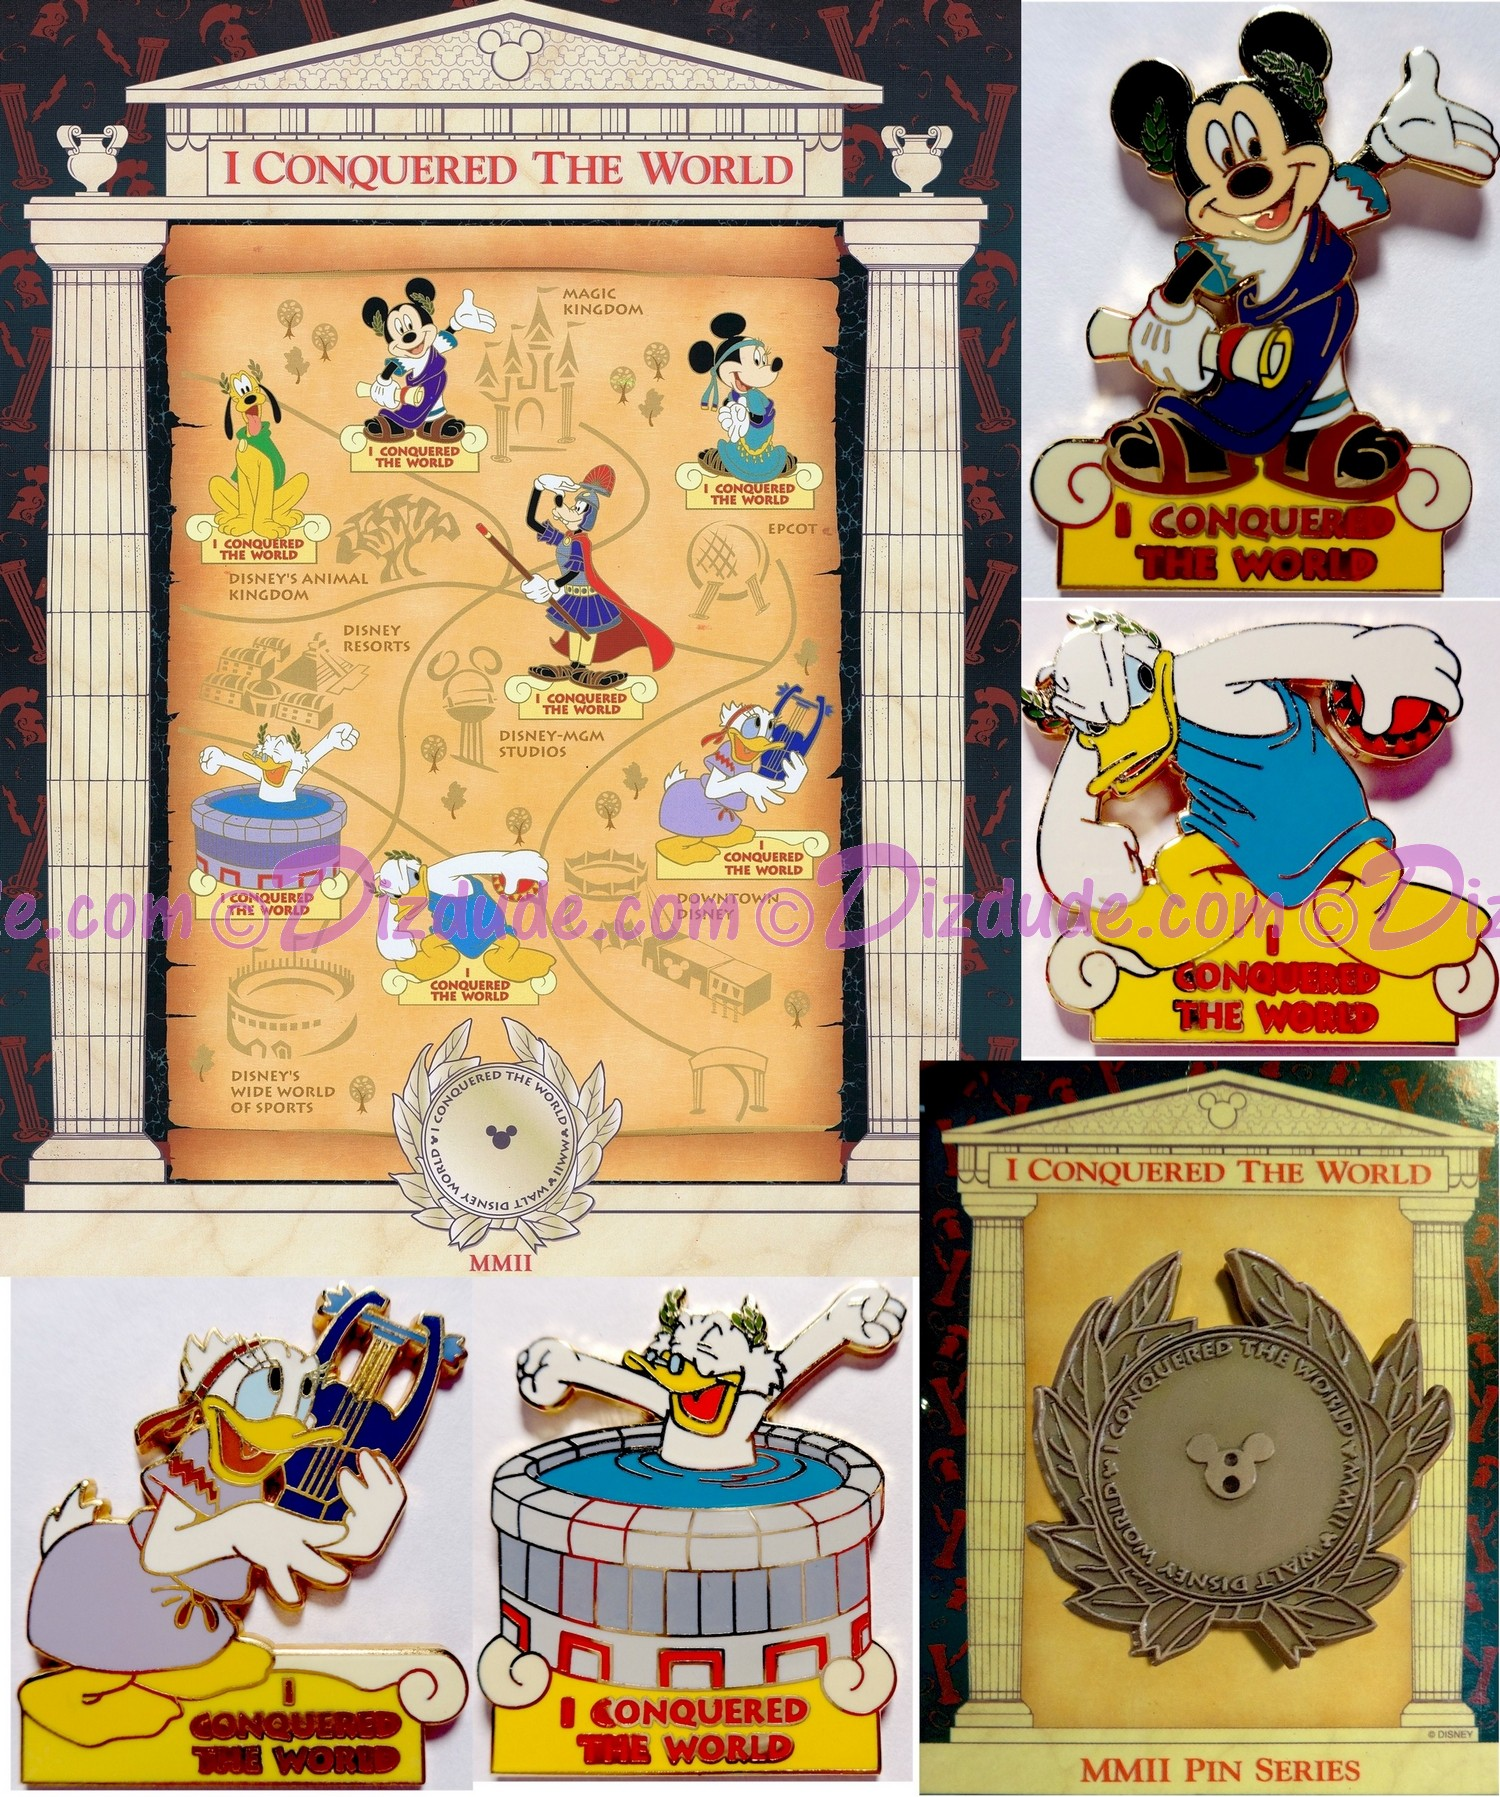 Walt Disney World Pin Pursuit Map Pin-board - I Conquered the World Pin Event with Build-a-Pin Base Completer Pin and 4 Pins